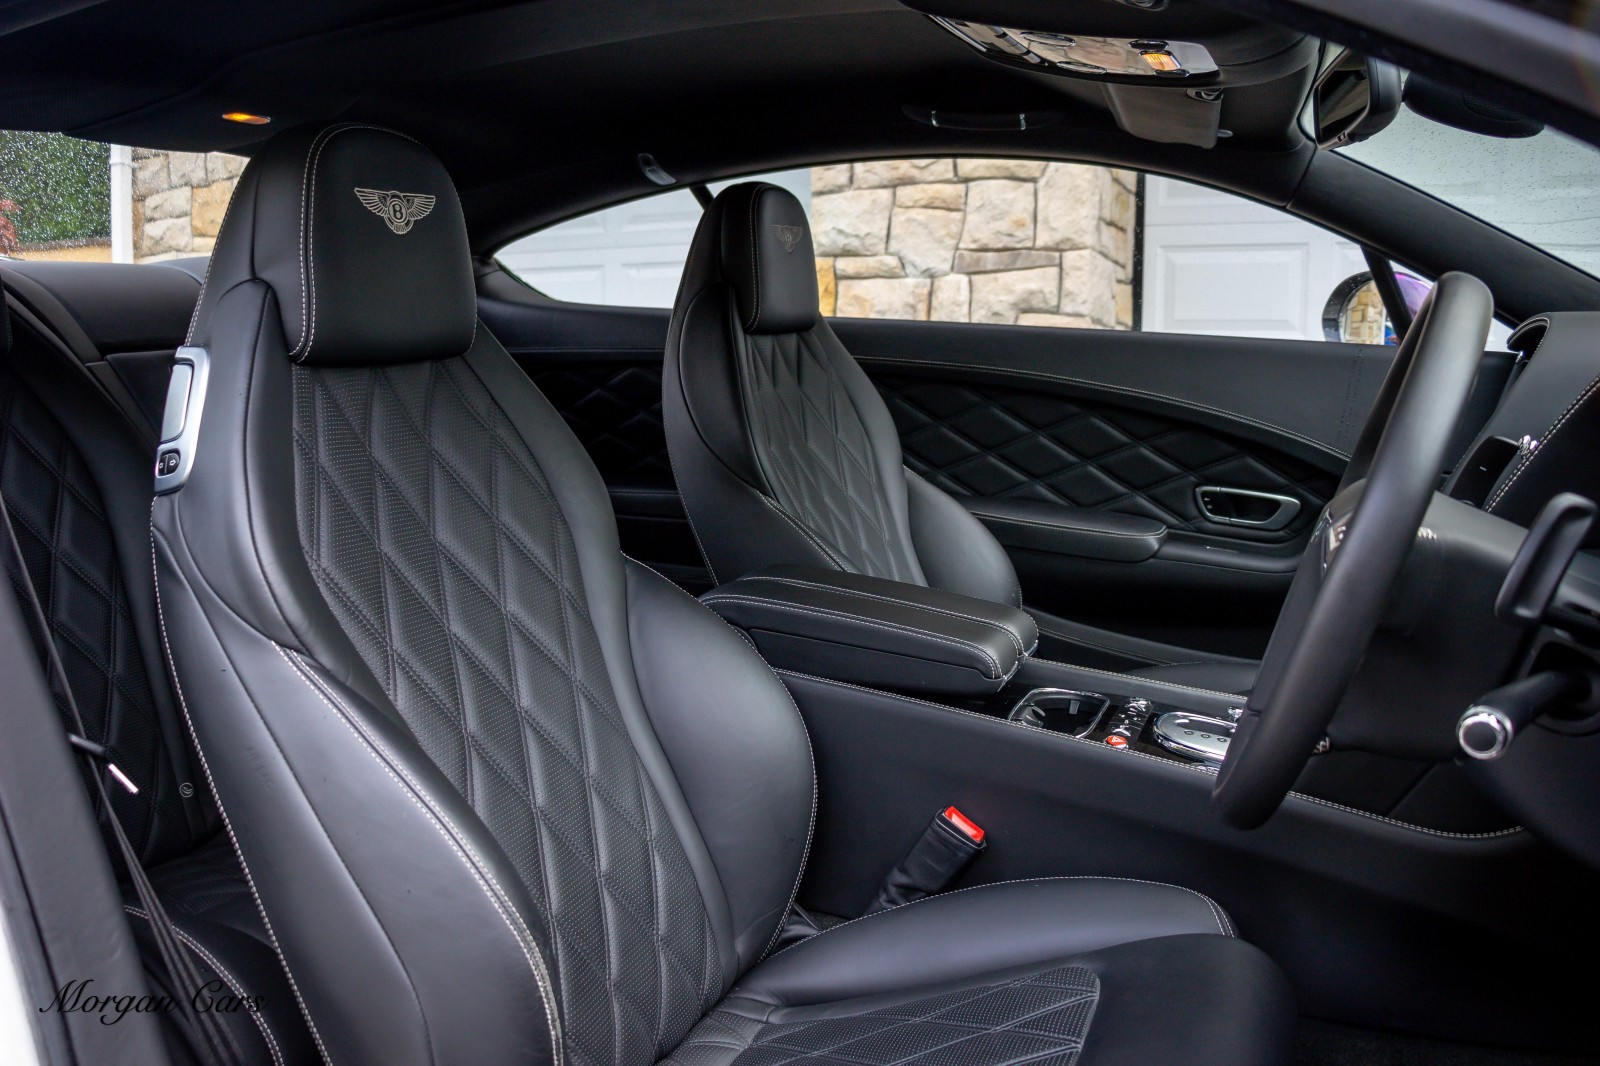 2014 Bentley Continental GT SPEED 6.0 W12 Petrol Automatic – Morgan Cars 9 Mound Road, Warrenpoint, Newry BT34 3LW, UK full